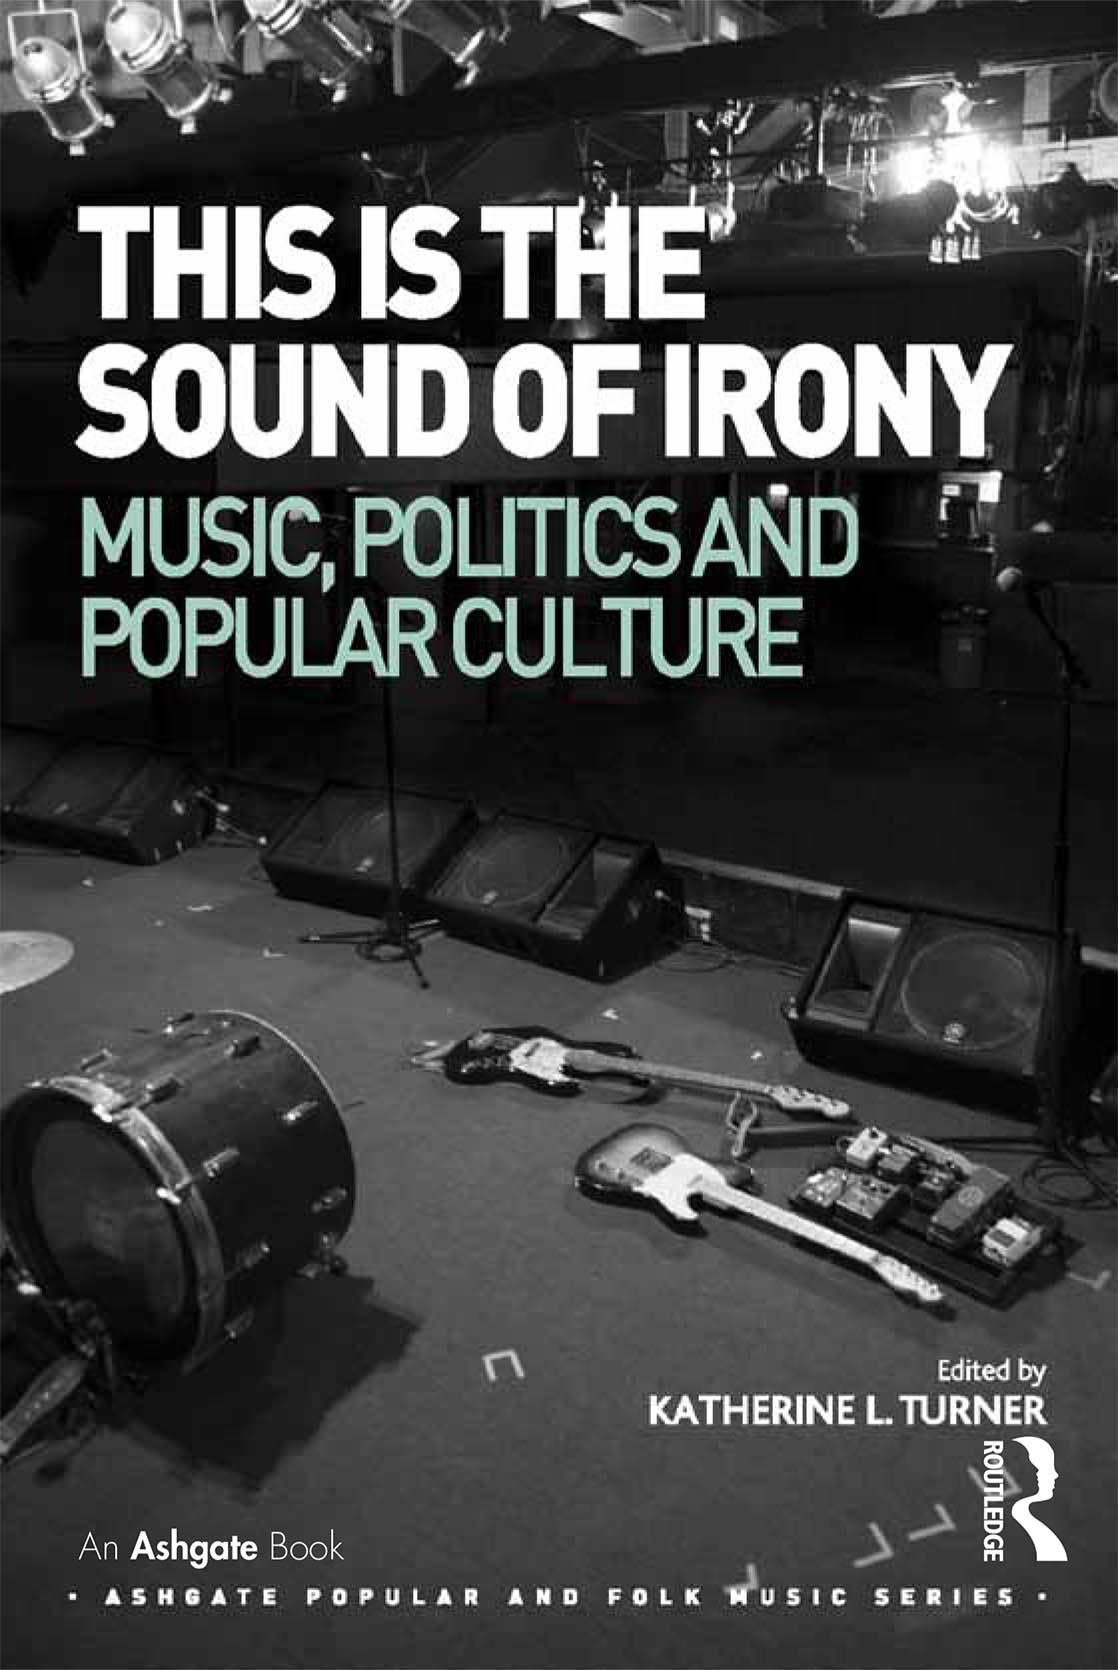 This isthe Sound ofIrony: Music, Politics and Popular Culture